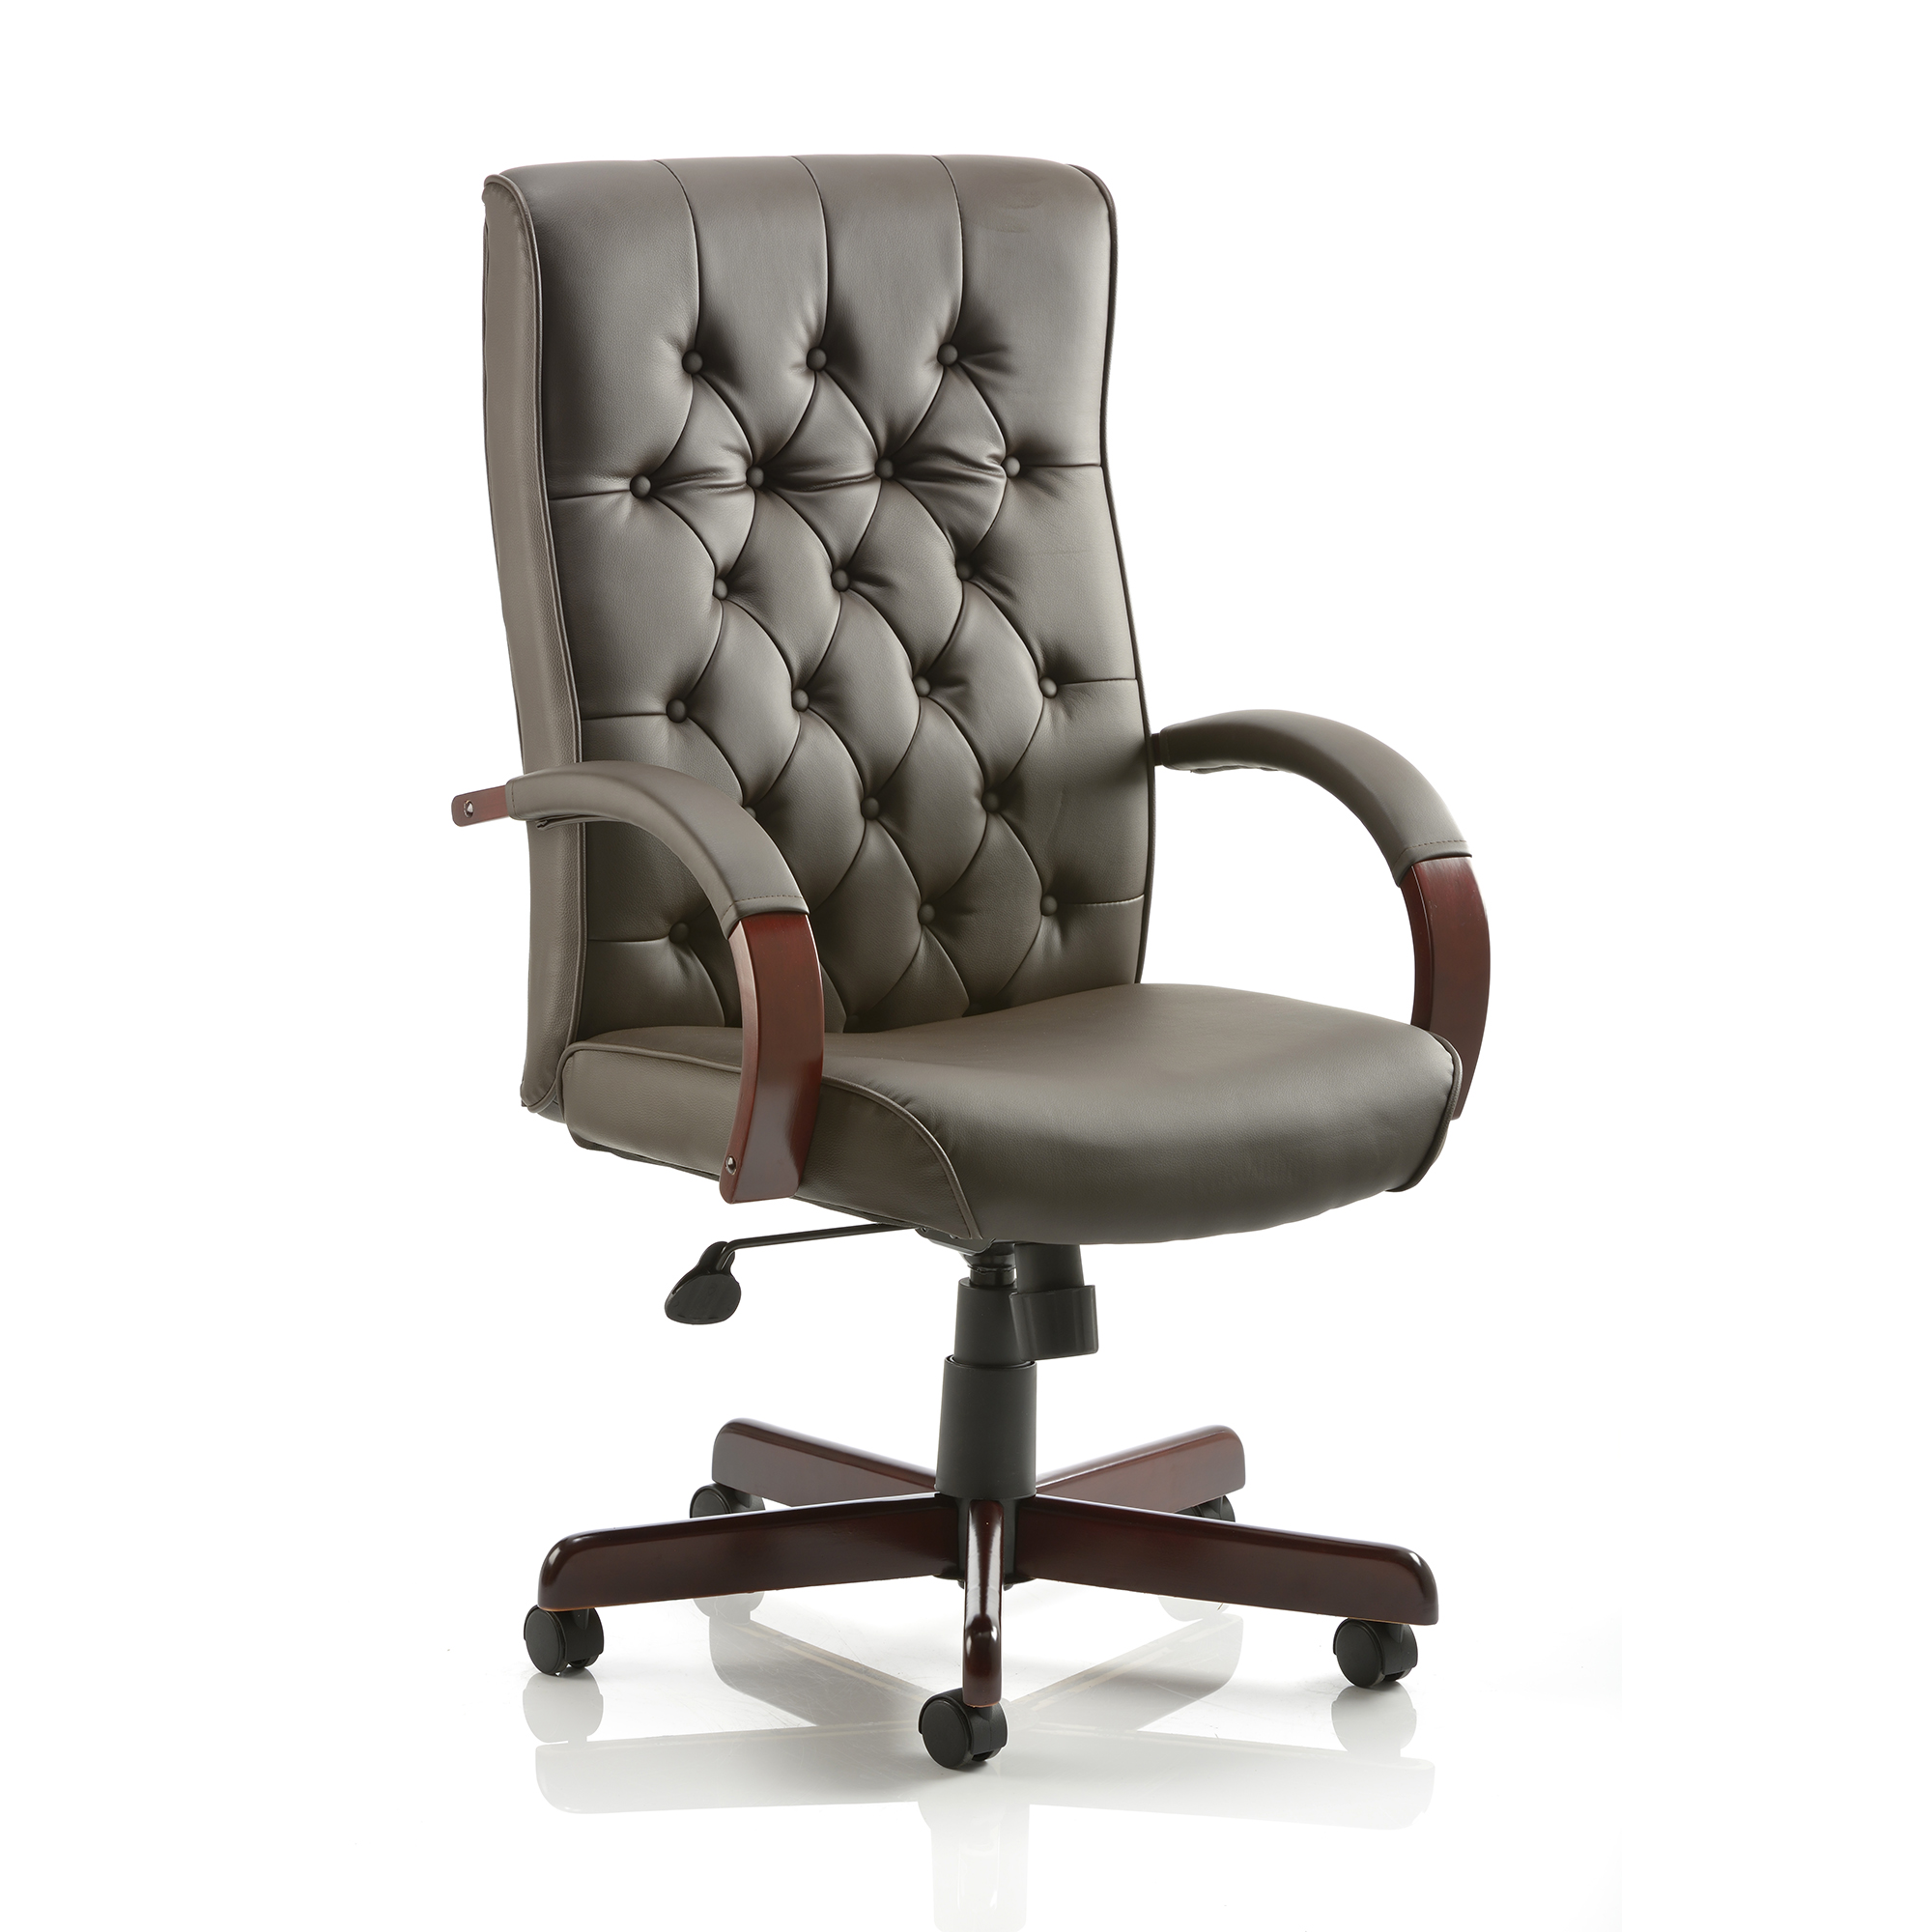 Executive seating Trexus Chesterfield Executive Chair With Arms Leather Brown Ref EX000003